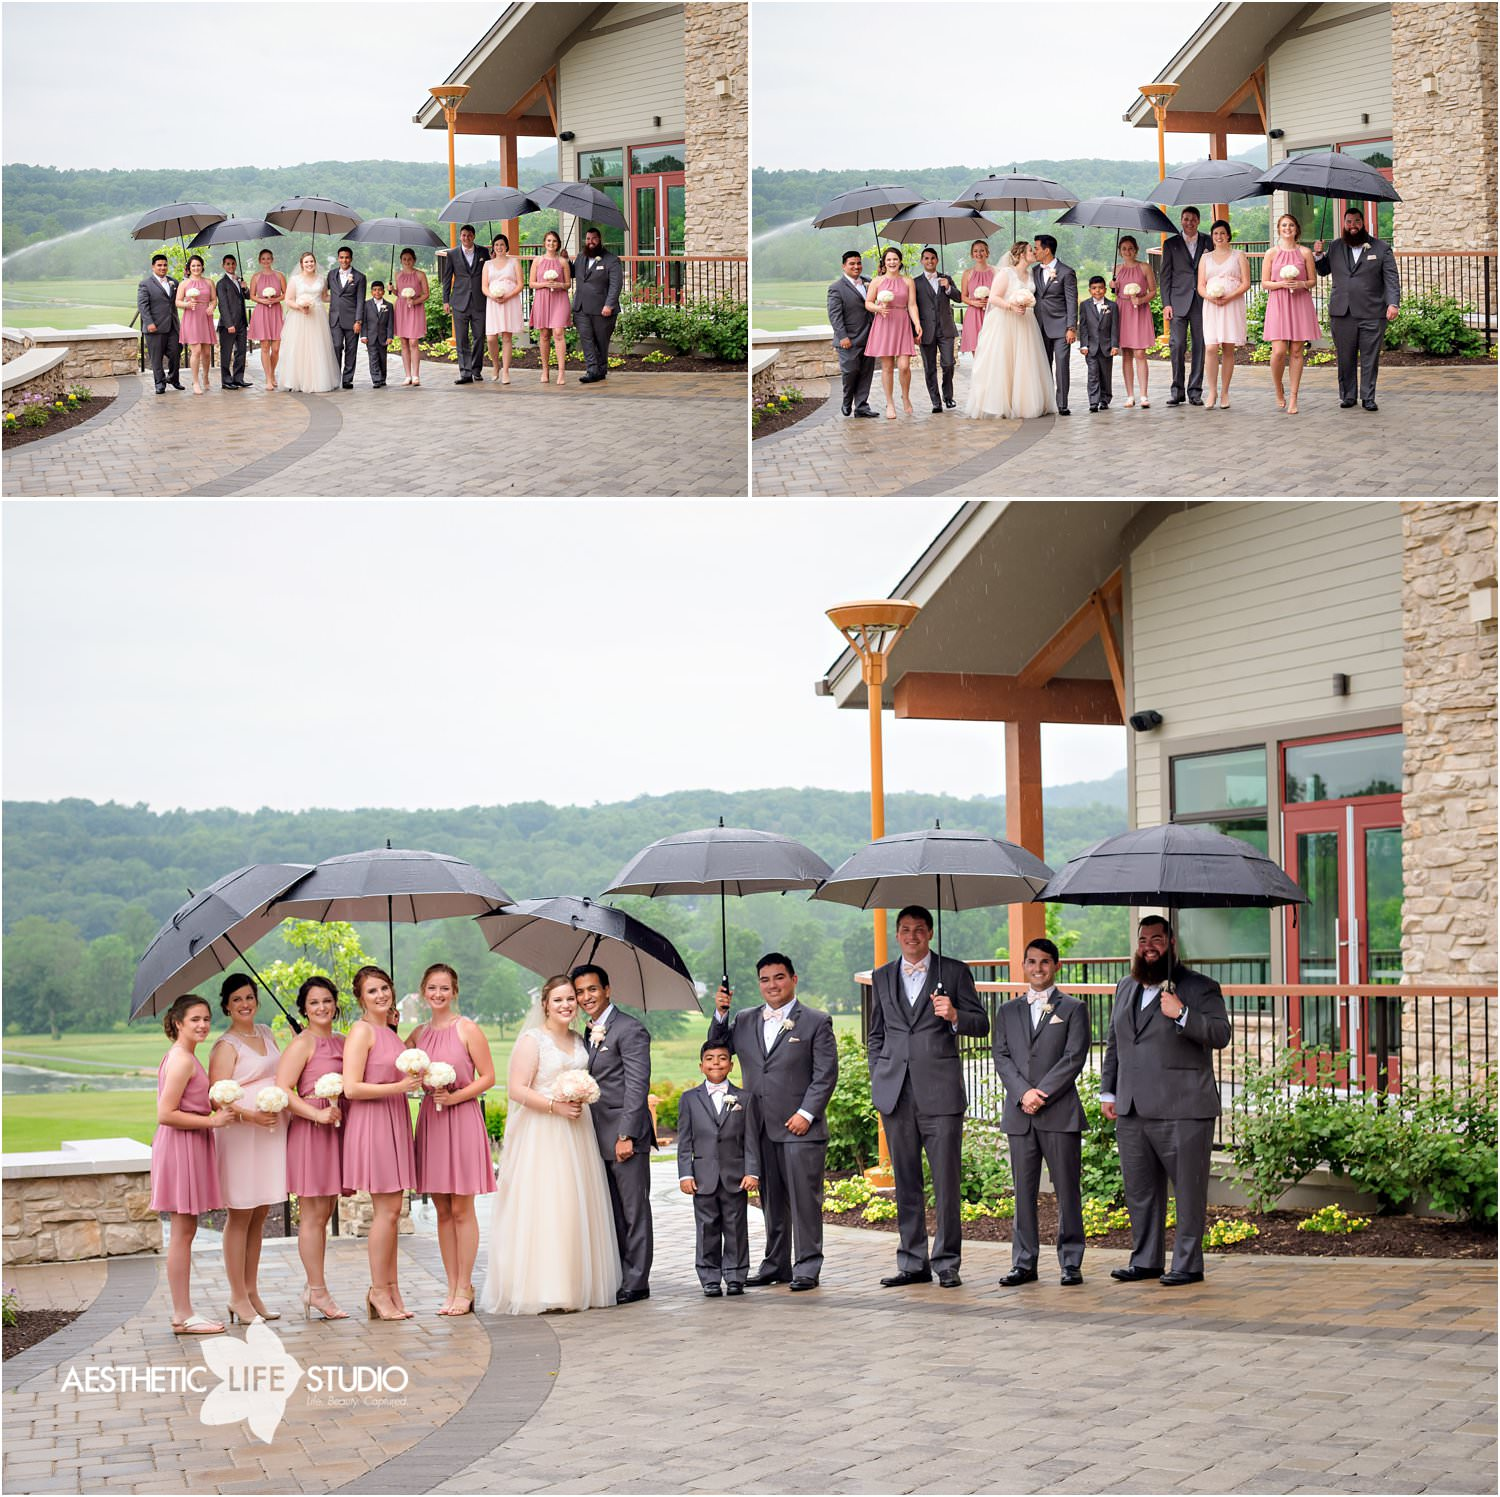 Highland Lodge Liberty Mountain Resort Wedding 017.jpg